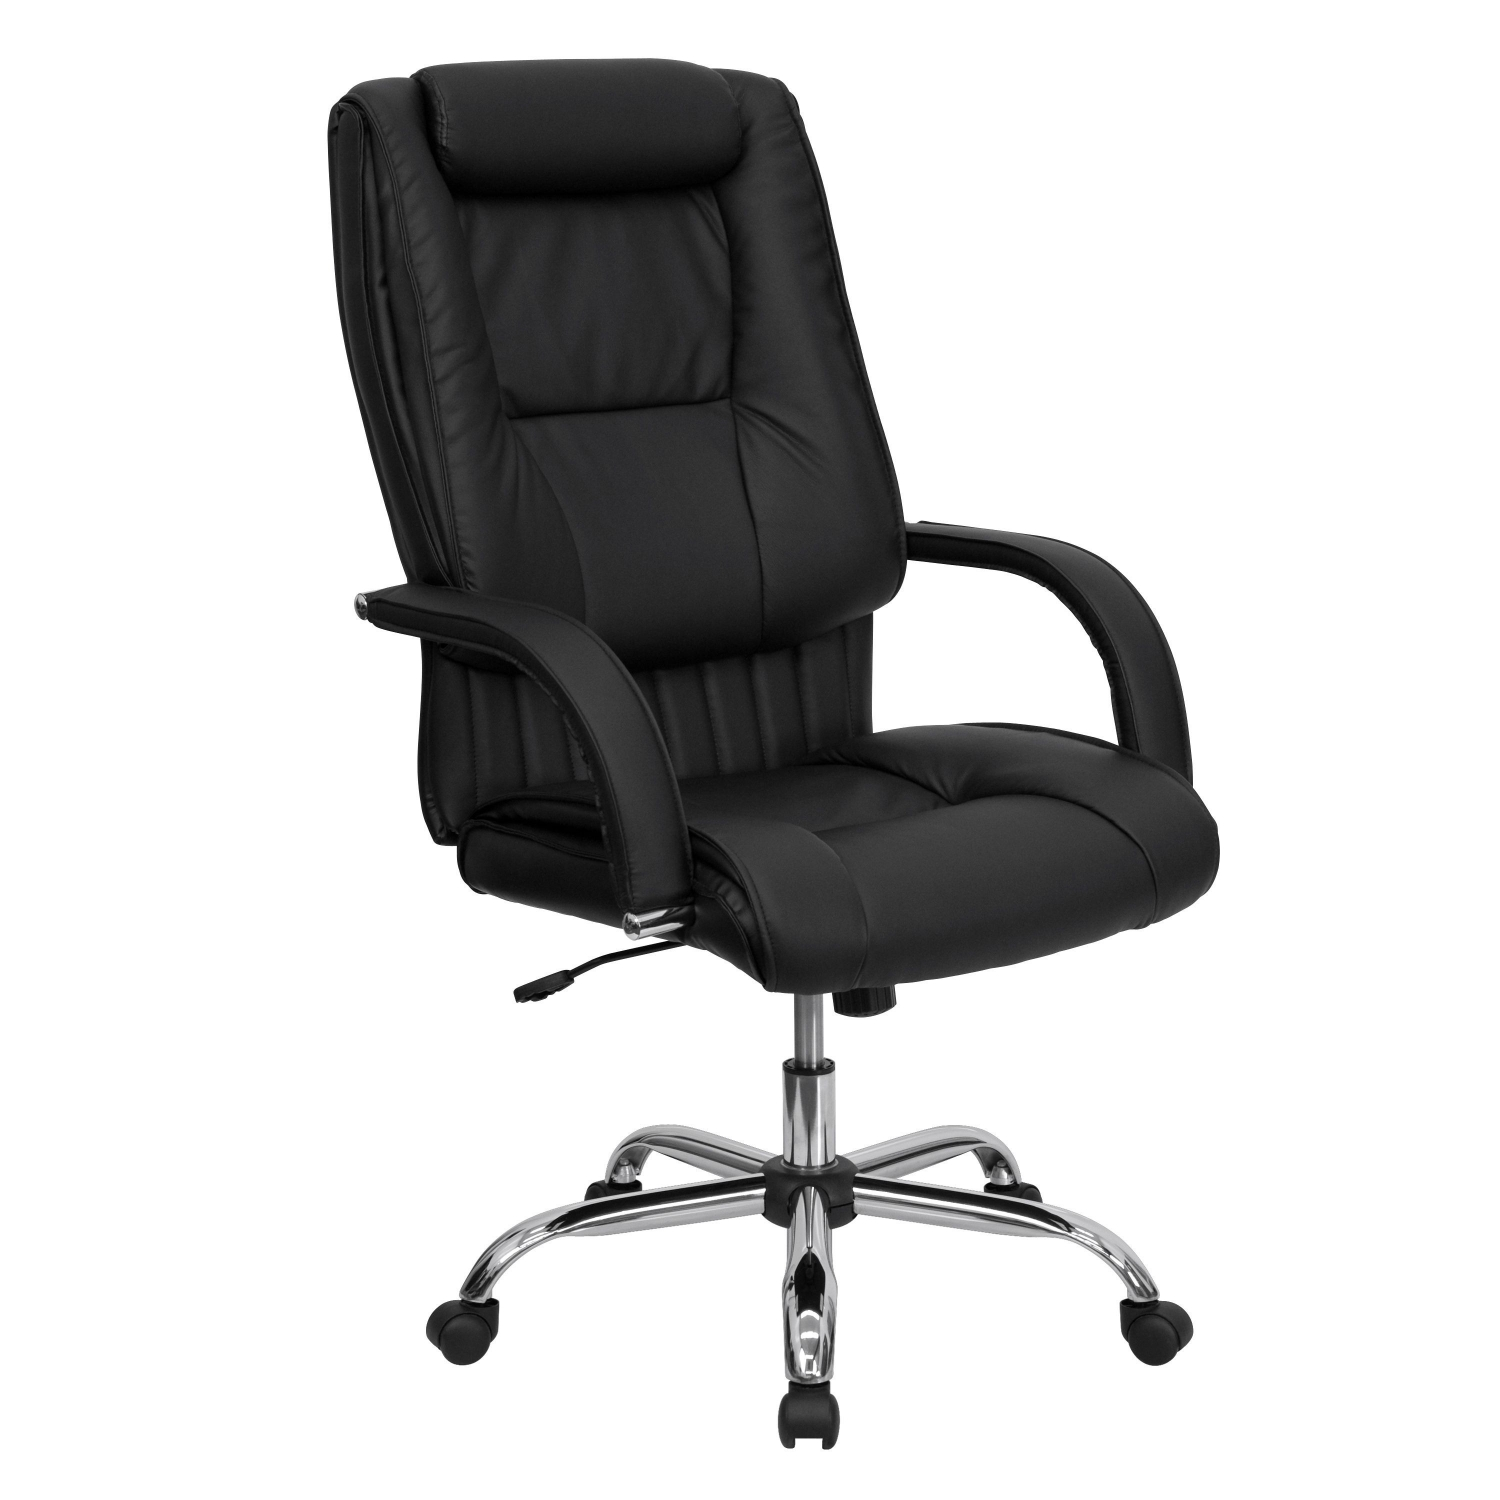 Furniture BT 9130 BK GG High Back Black Leather Executive Office Chair